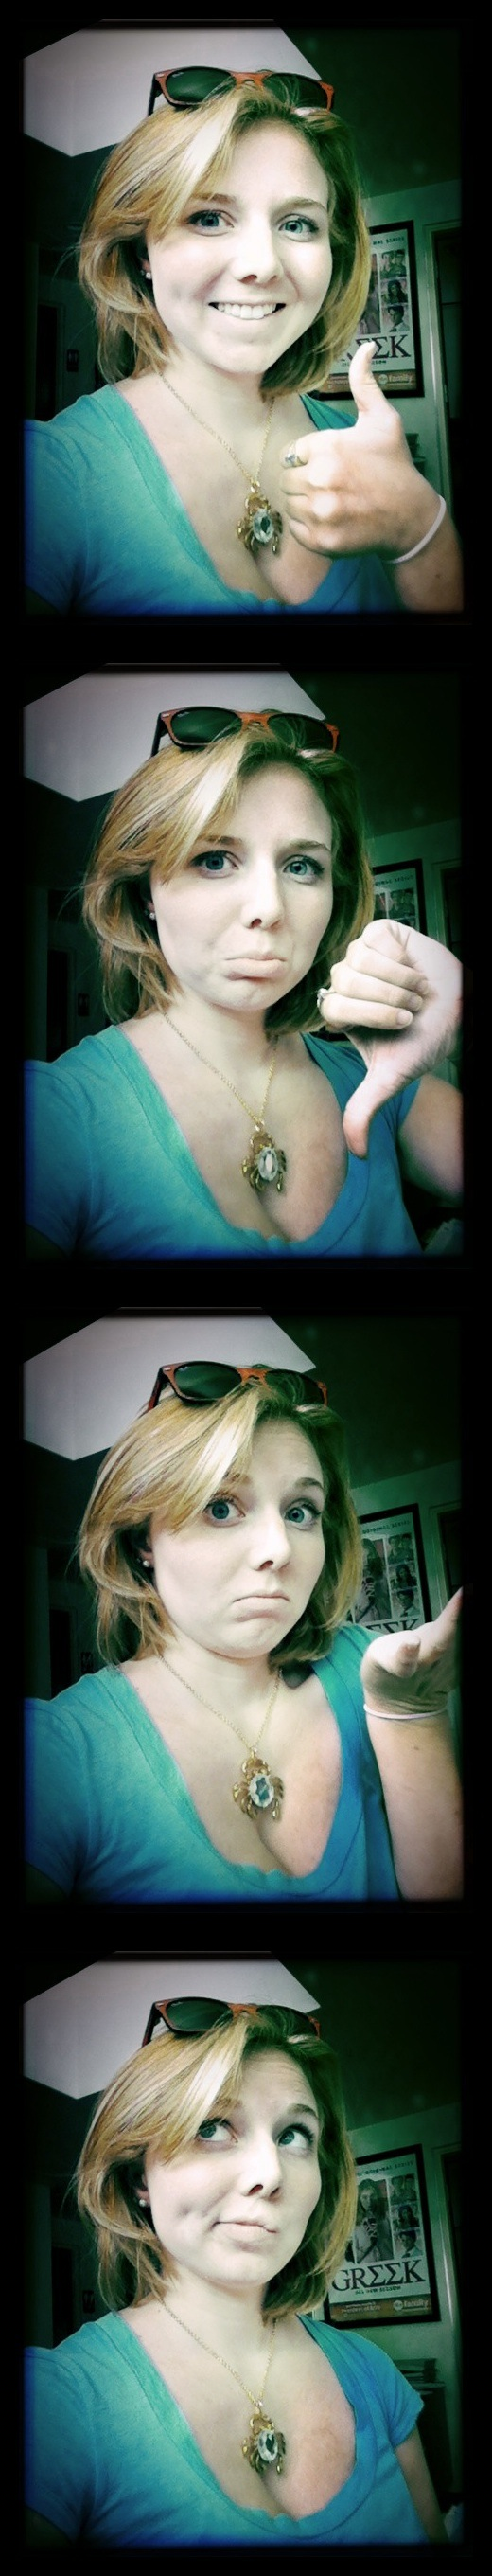 My Photo Strip (iPhone IncrediBooth app)